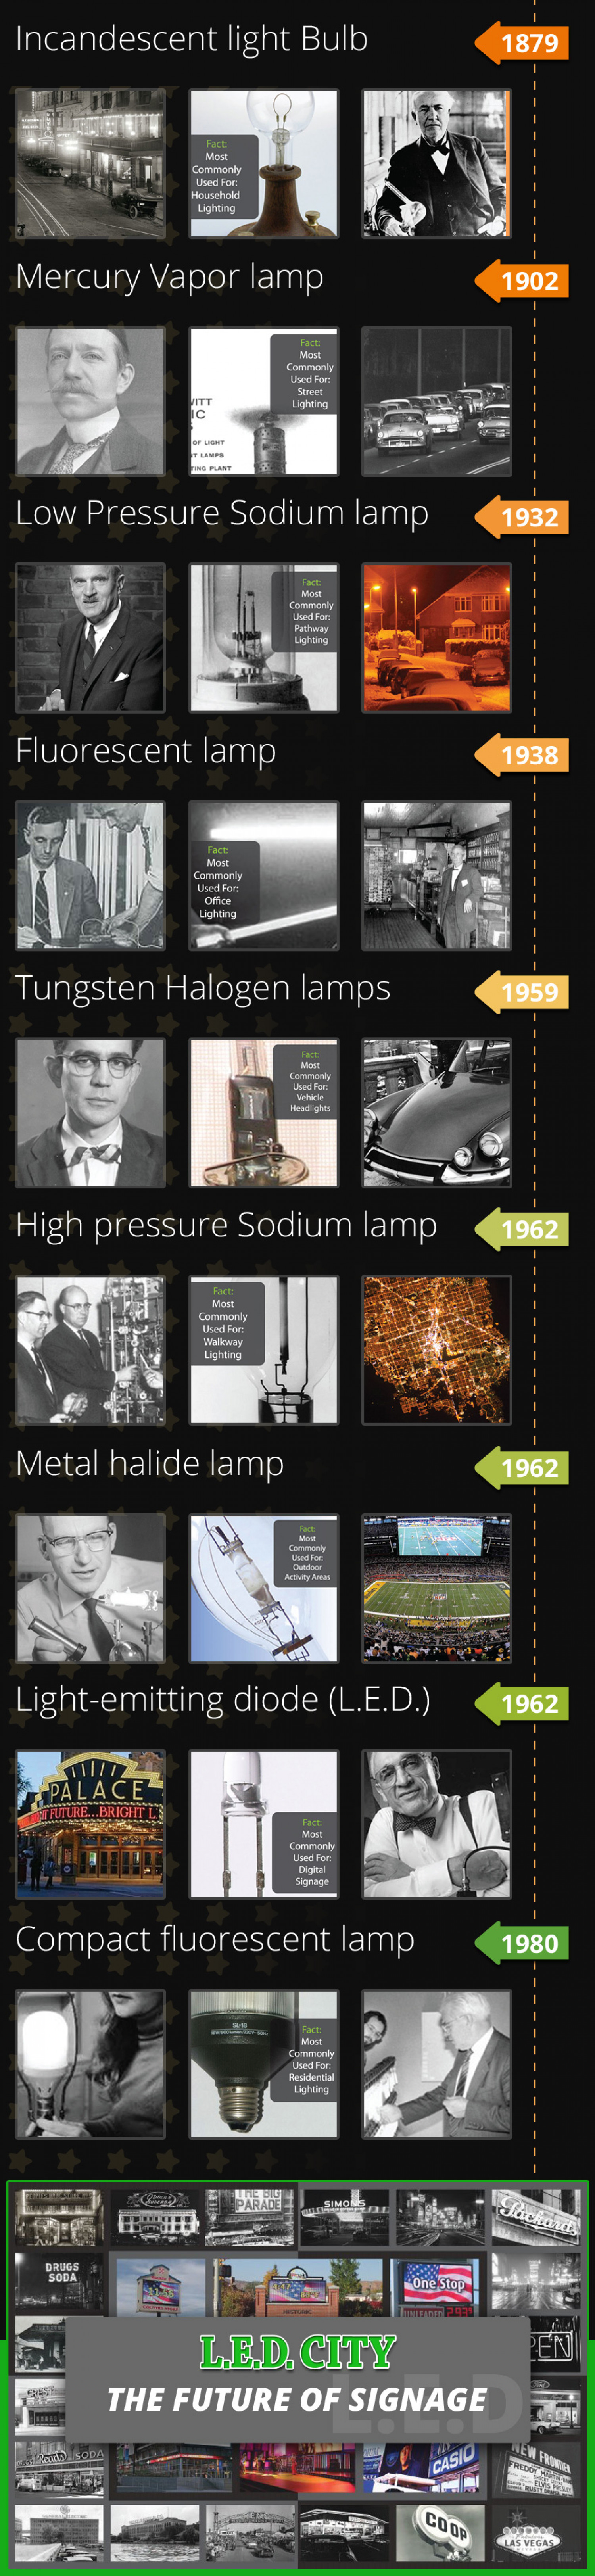 How Lights Invented & Transformed Infographic